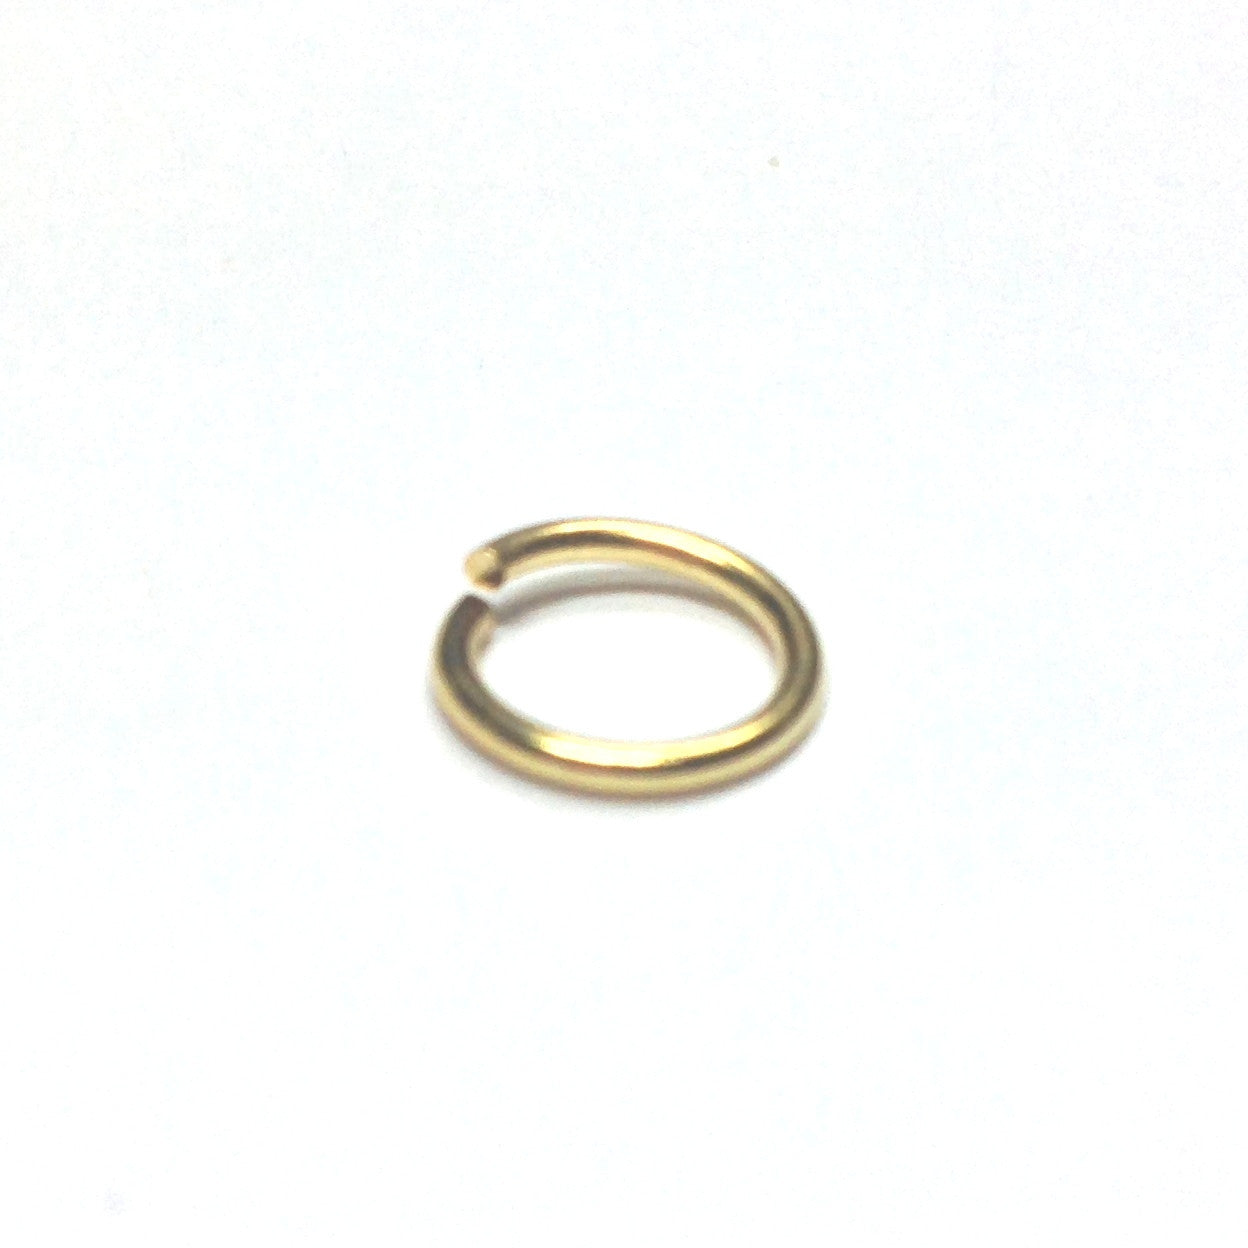 R4 (6.5MM) .040 Brass Jump Ring 1 Lb. (~4032 pieces)